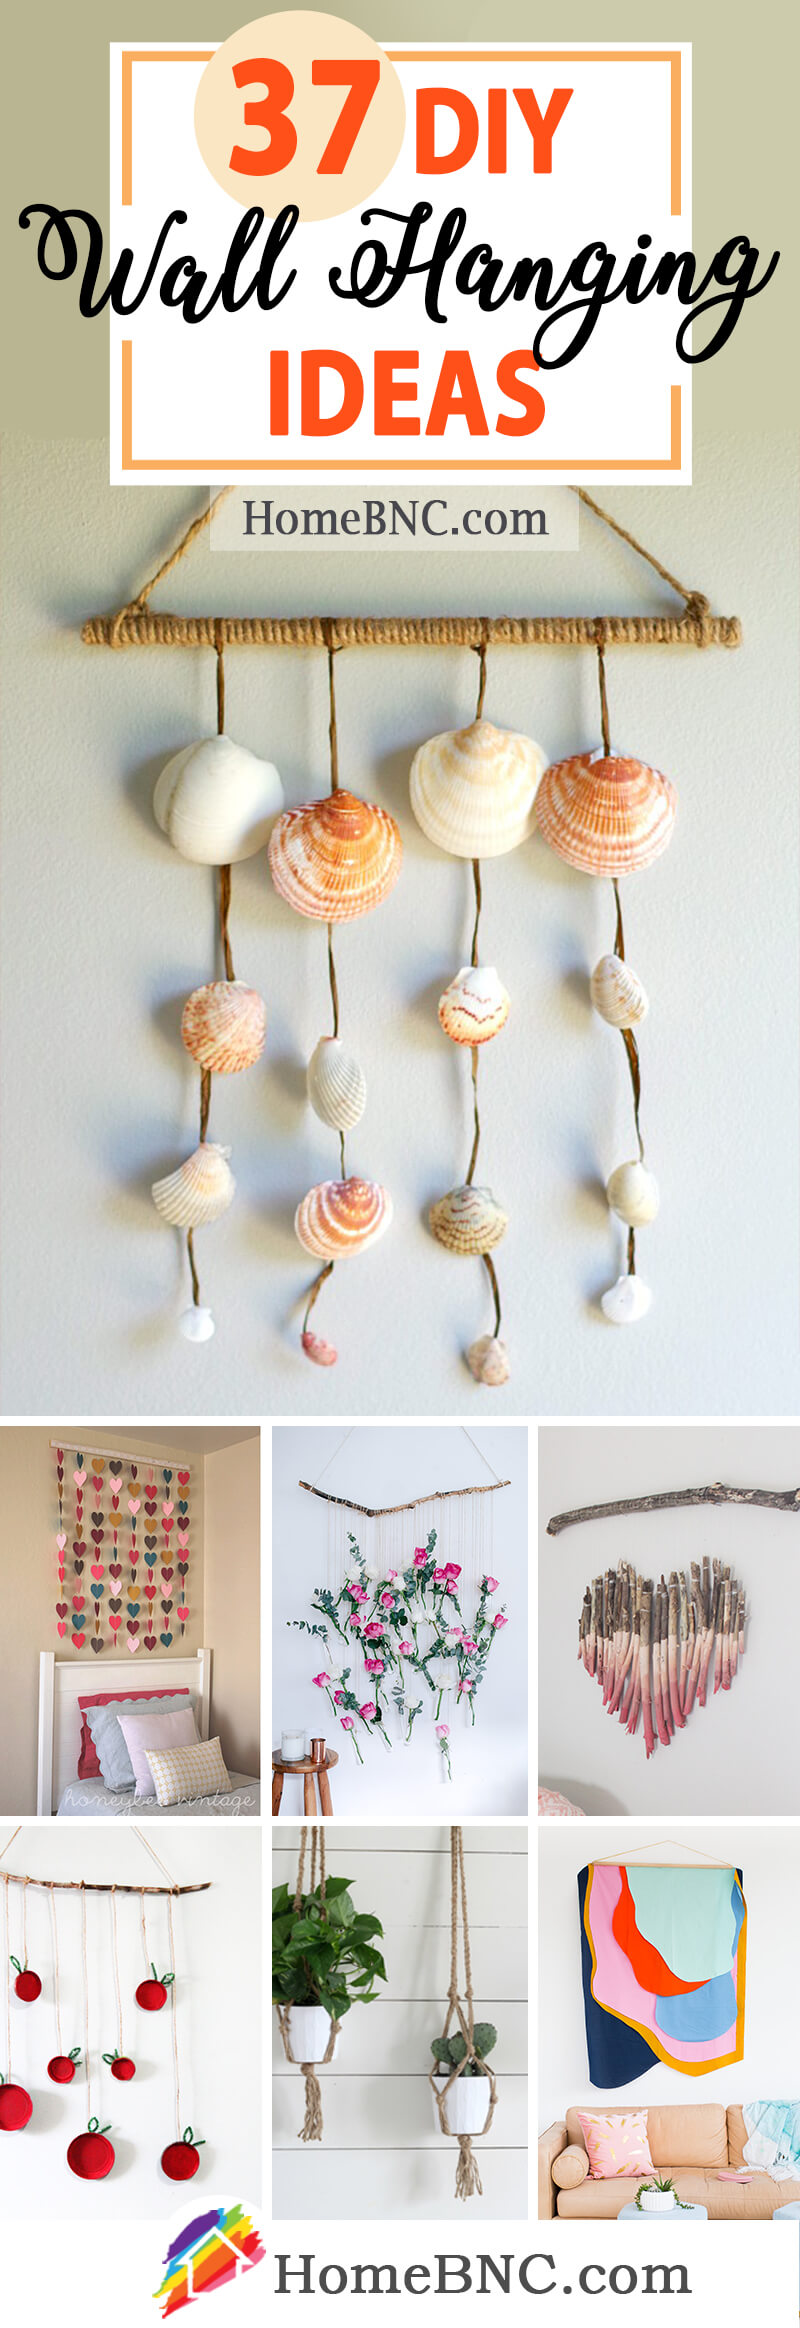 DIY Wall Hanging Decorations